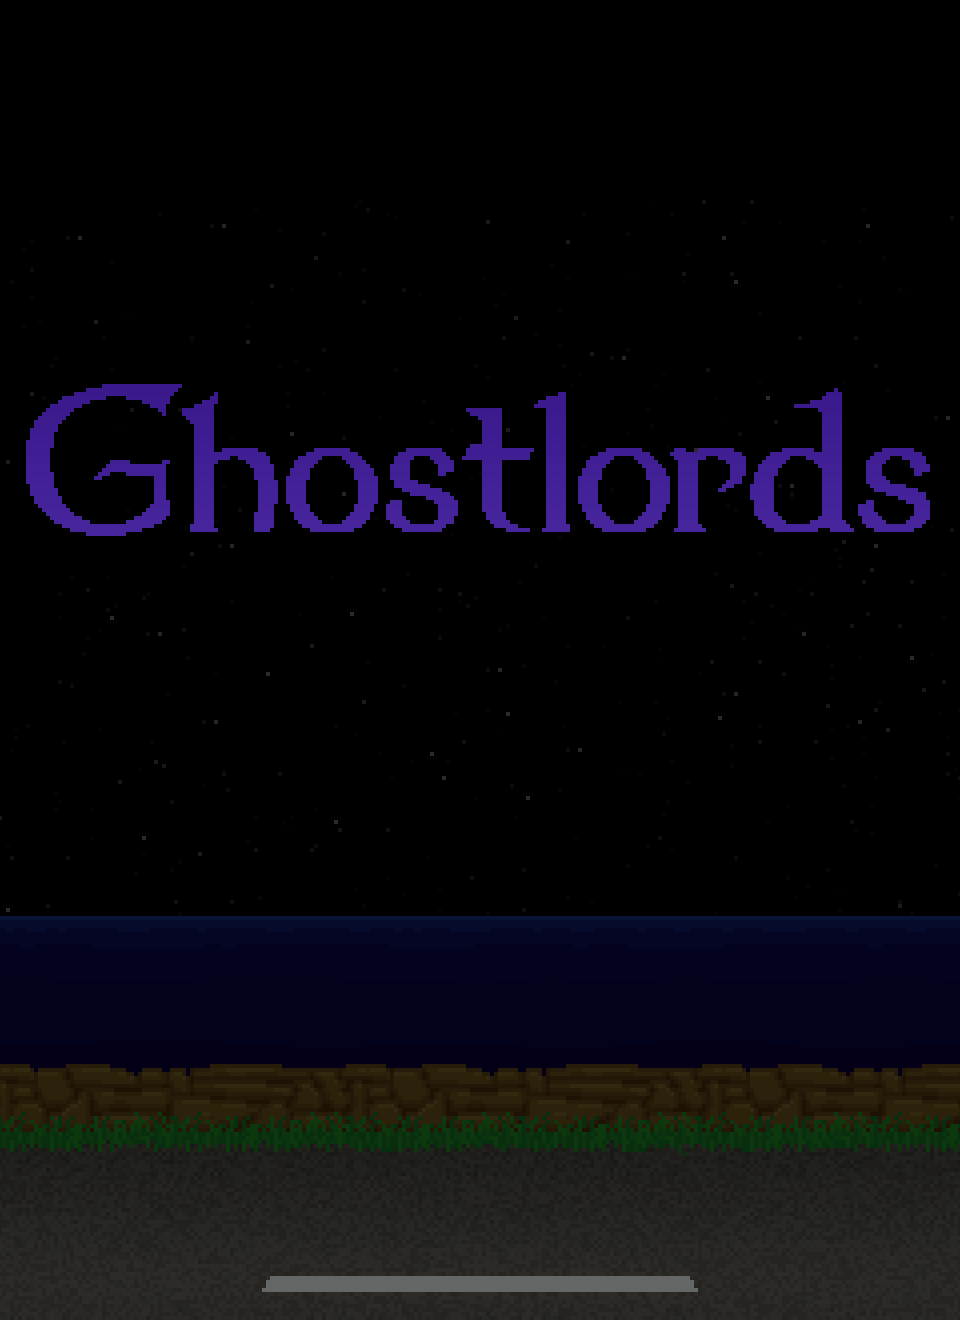 Ghost lords for mac emulator